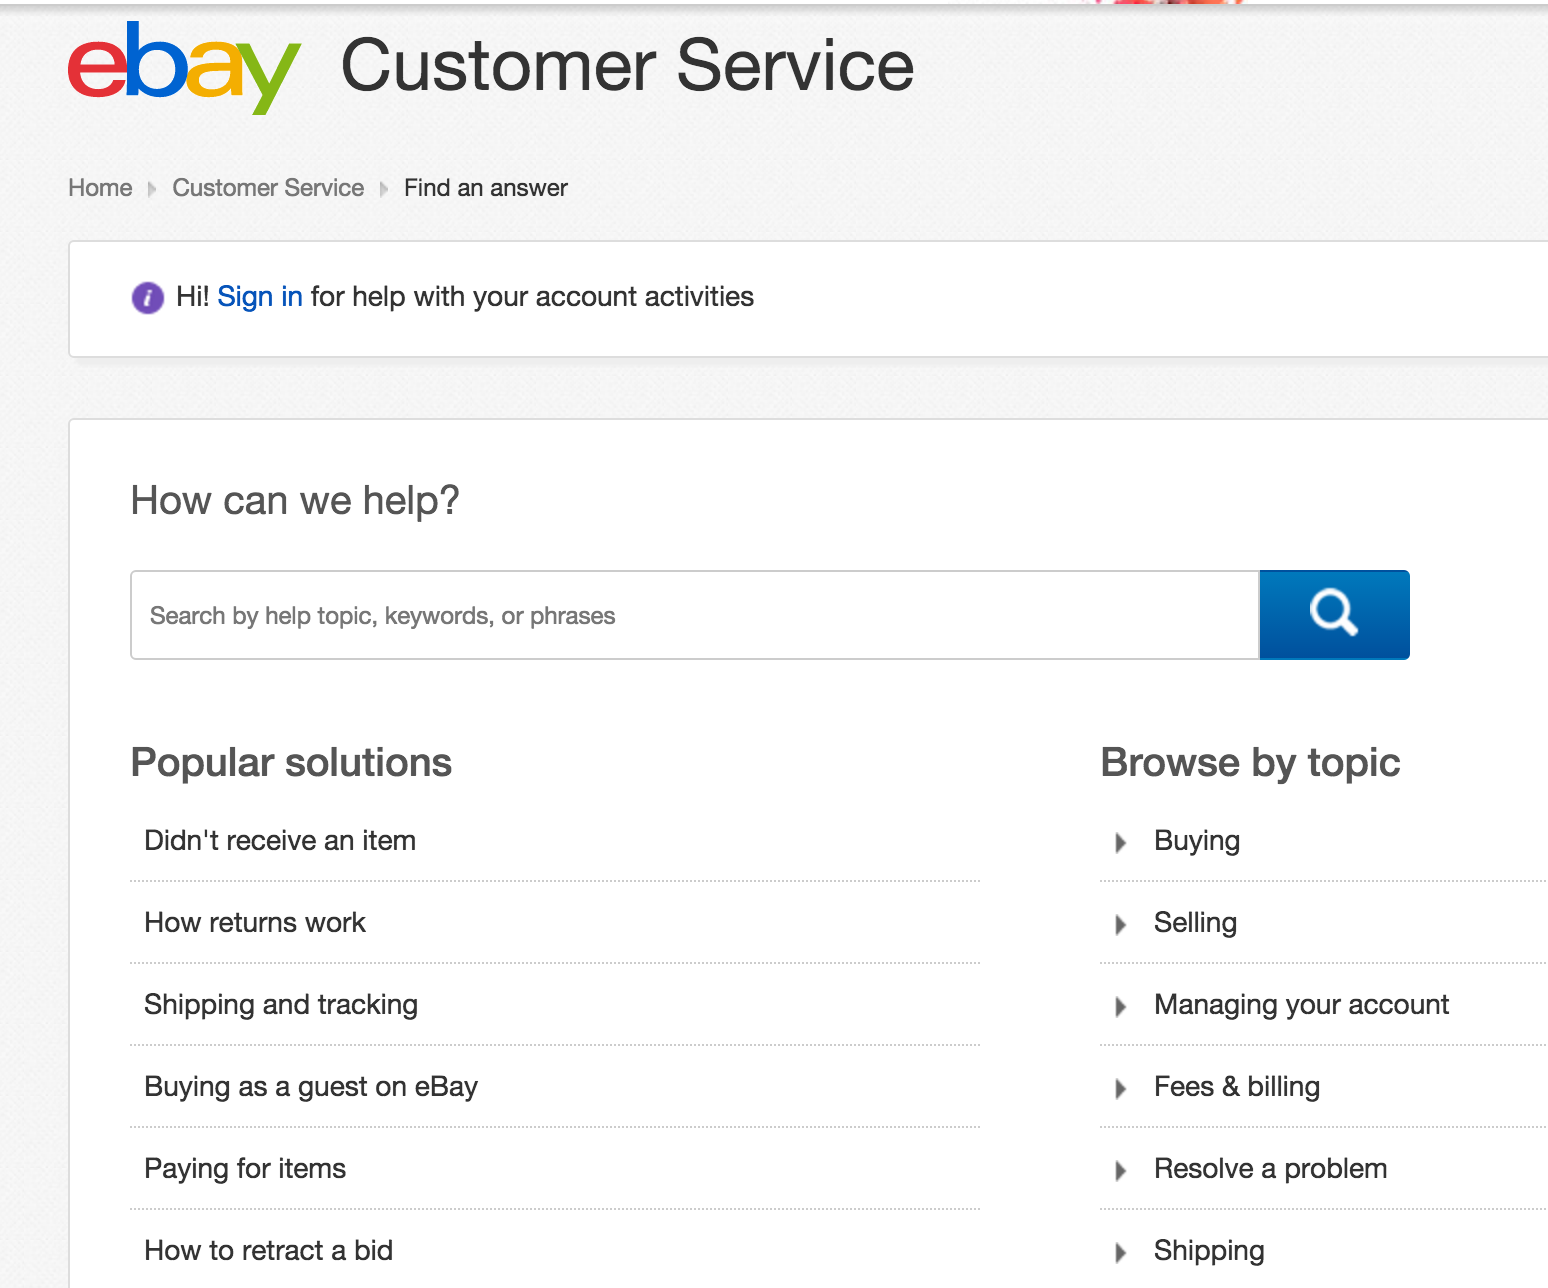 How does the best offer option work on ebay